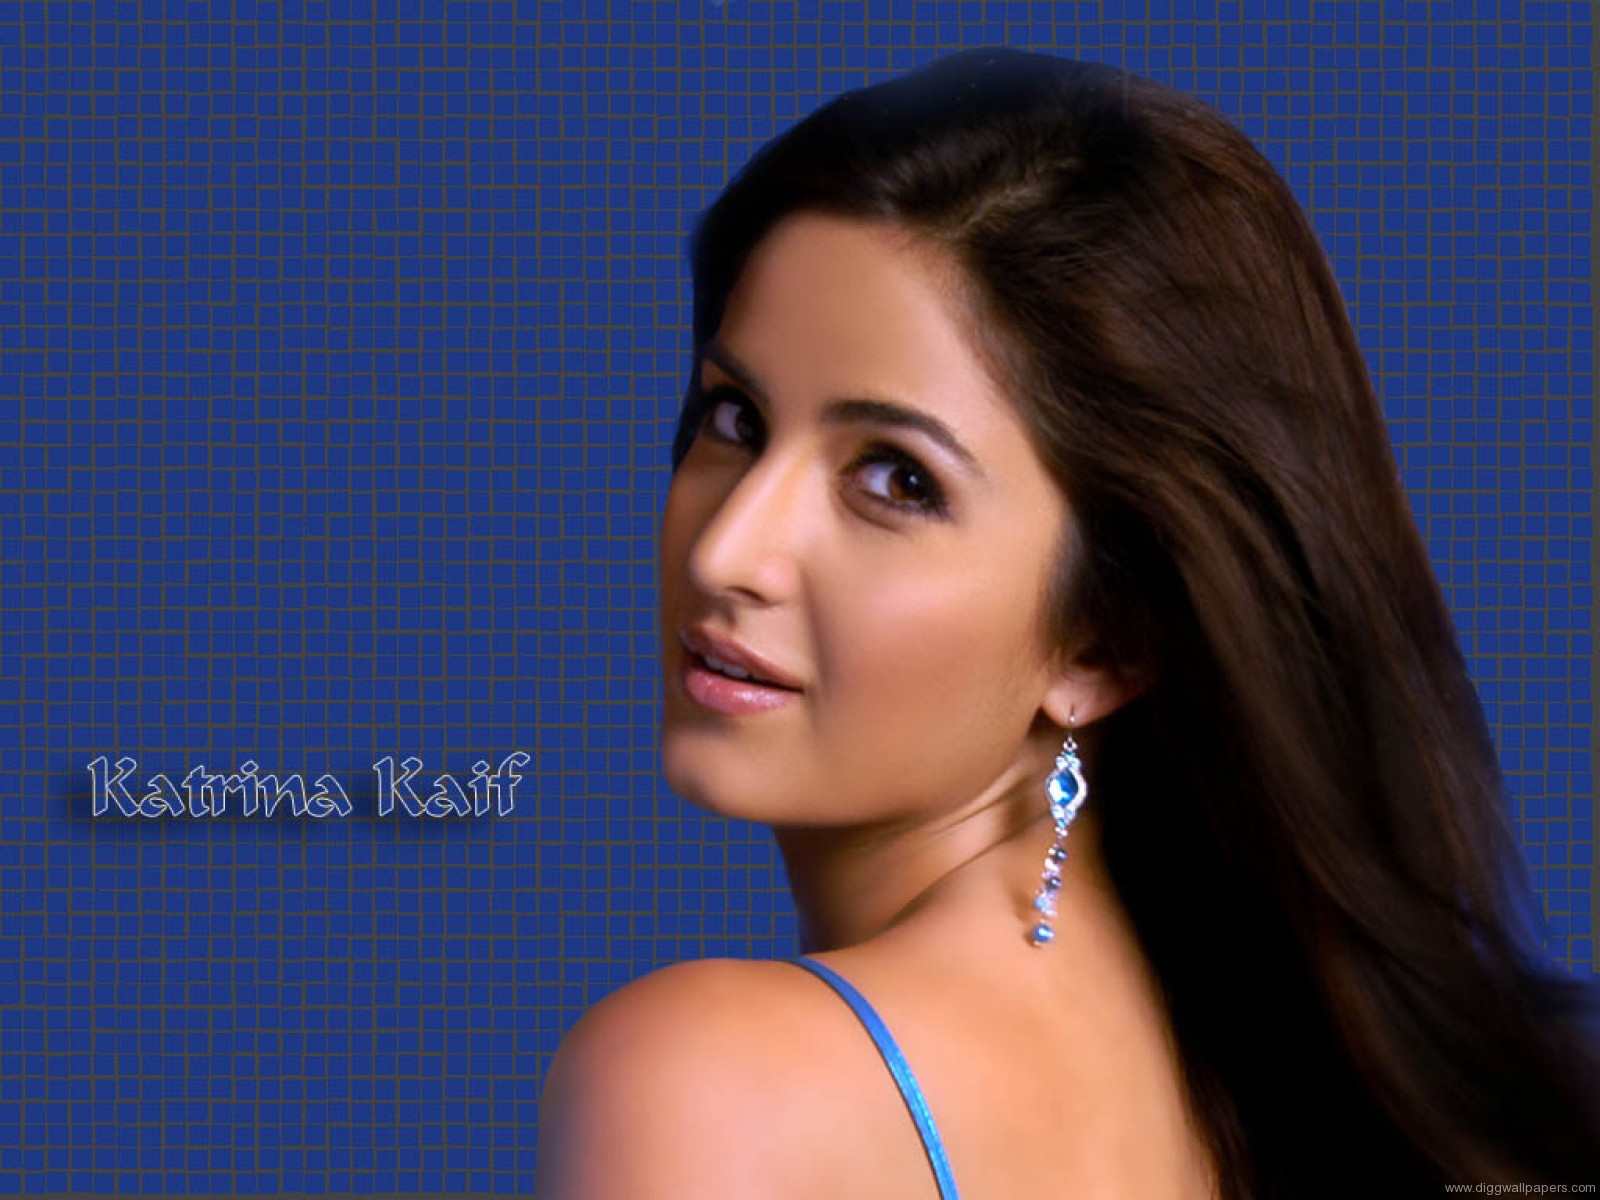 lamenik: katrina kaif full hd wallpaper